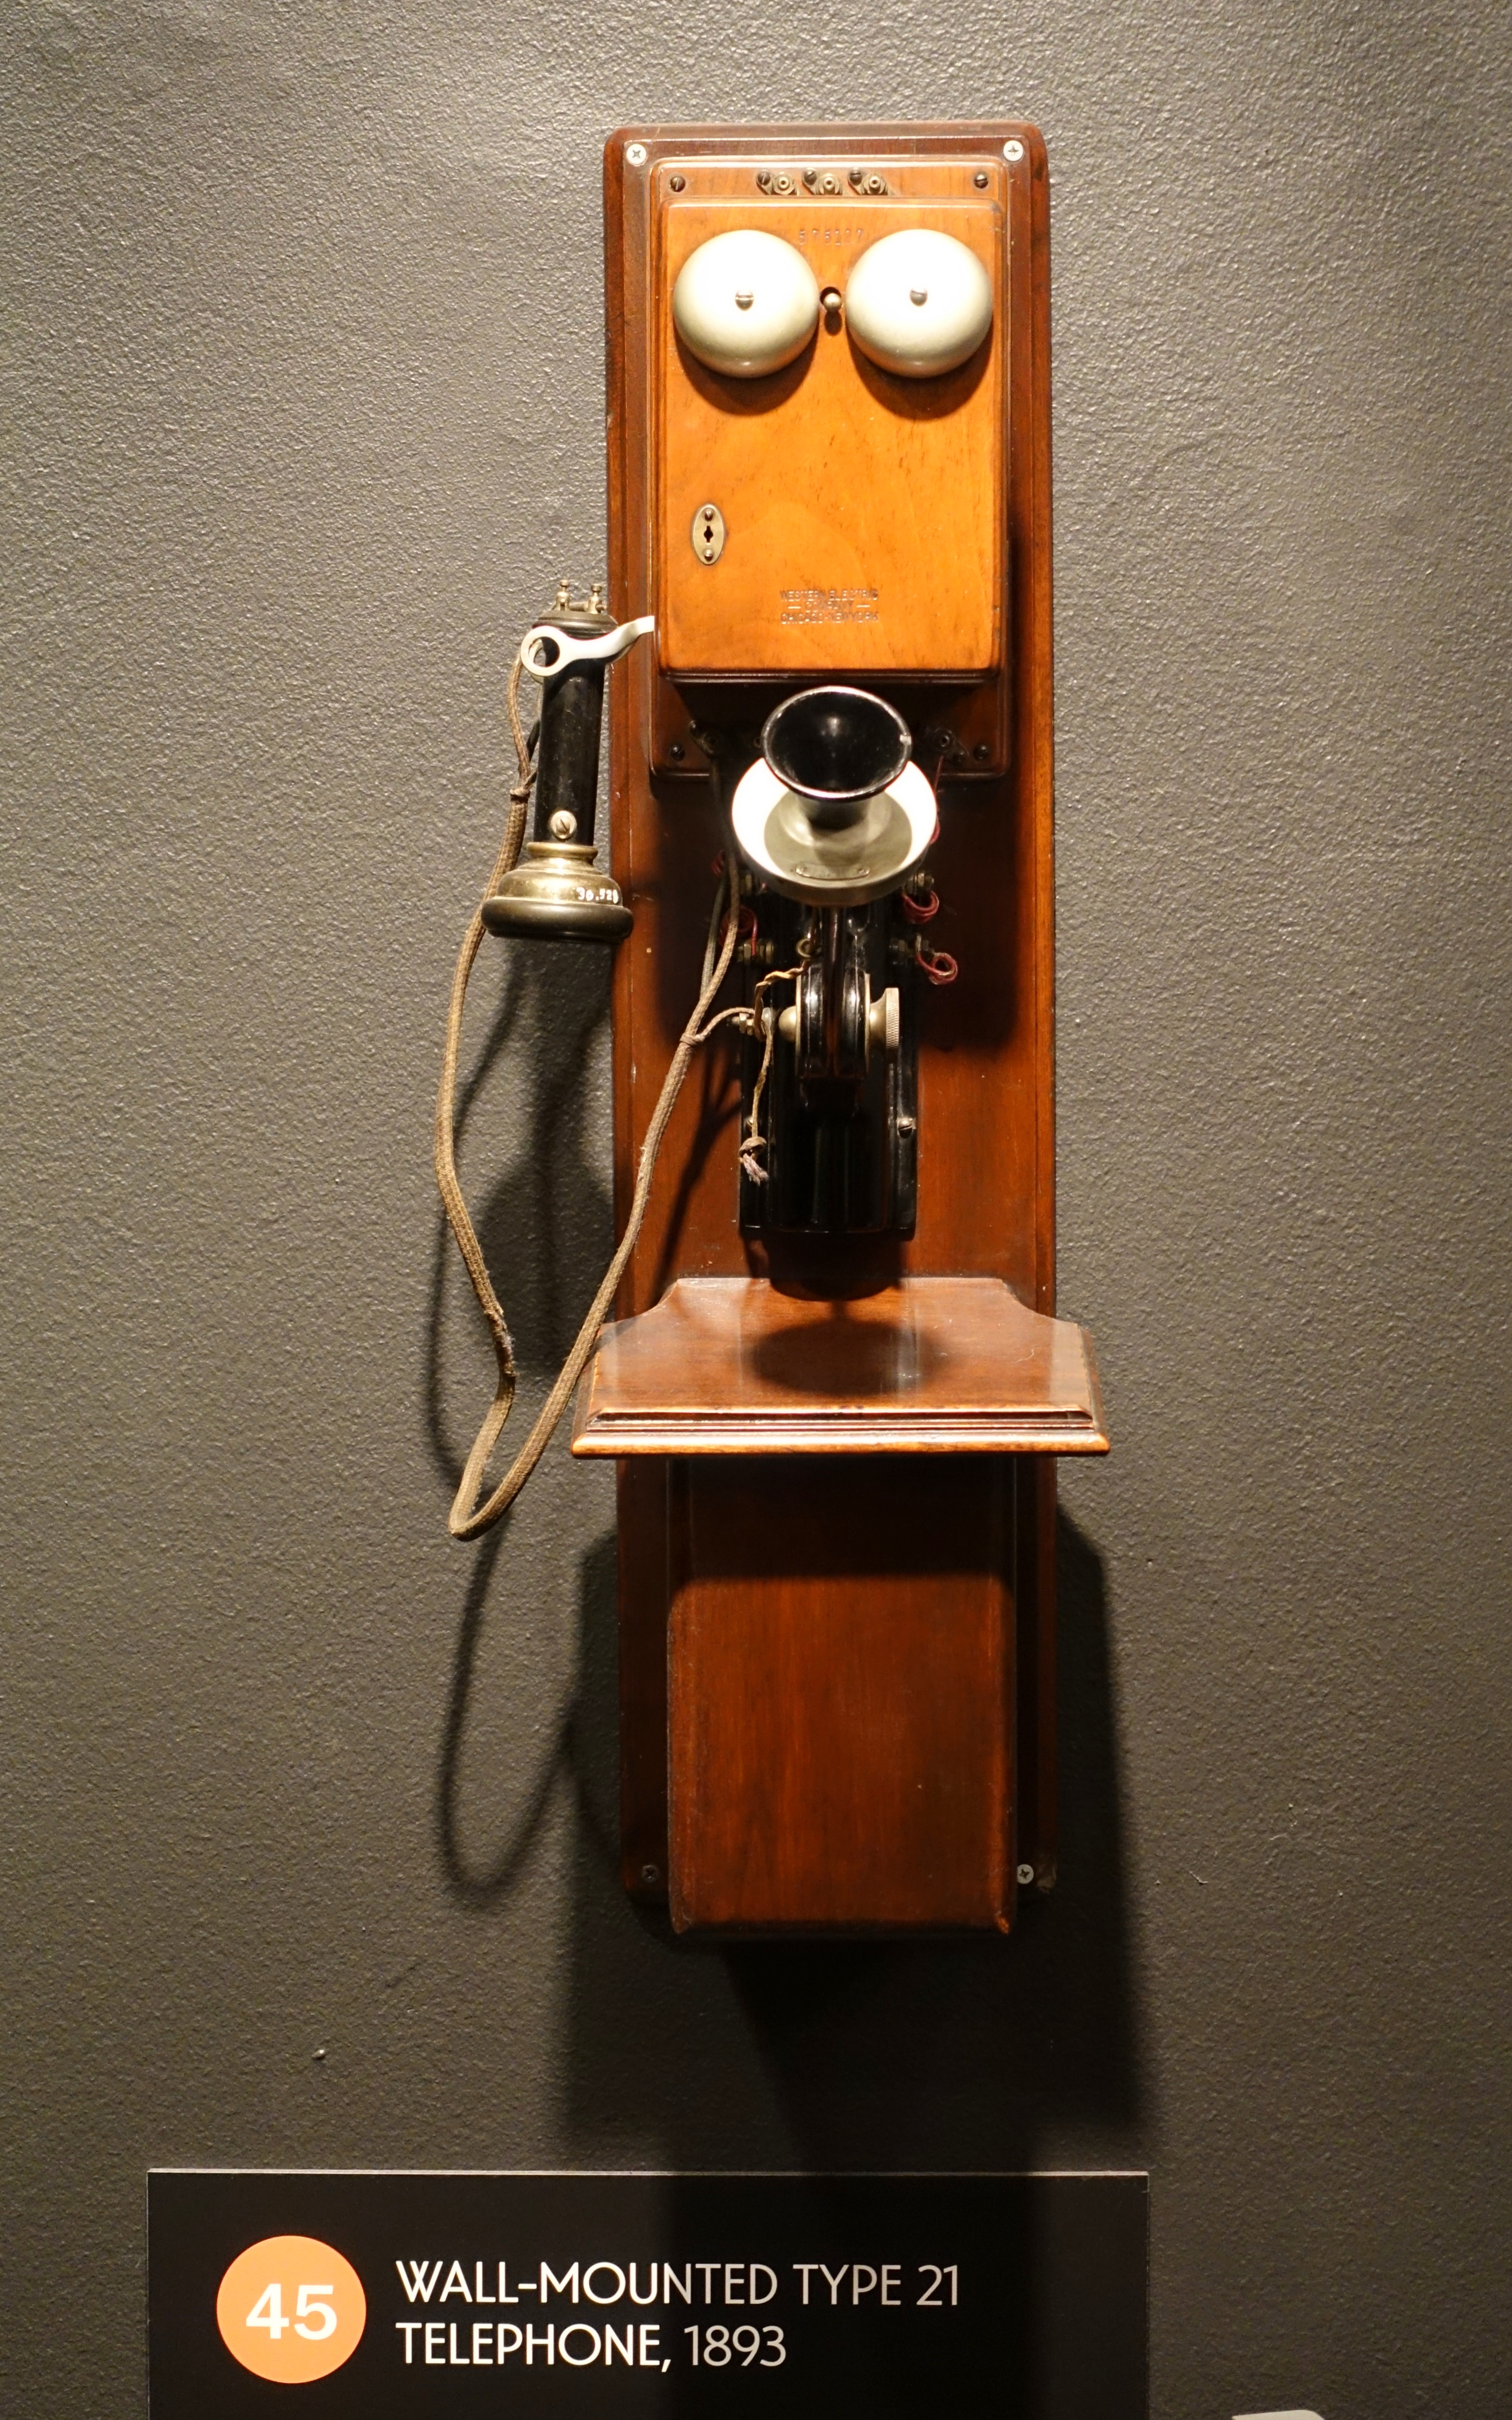 Chart Holder Wall Mount: Wall-mounted Type 21 telephone 1893 Western Electric ,Chart